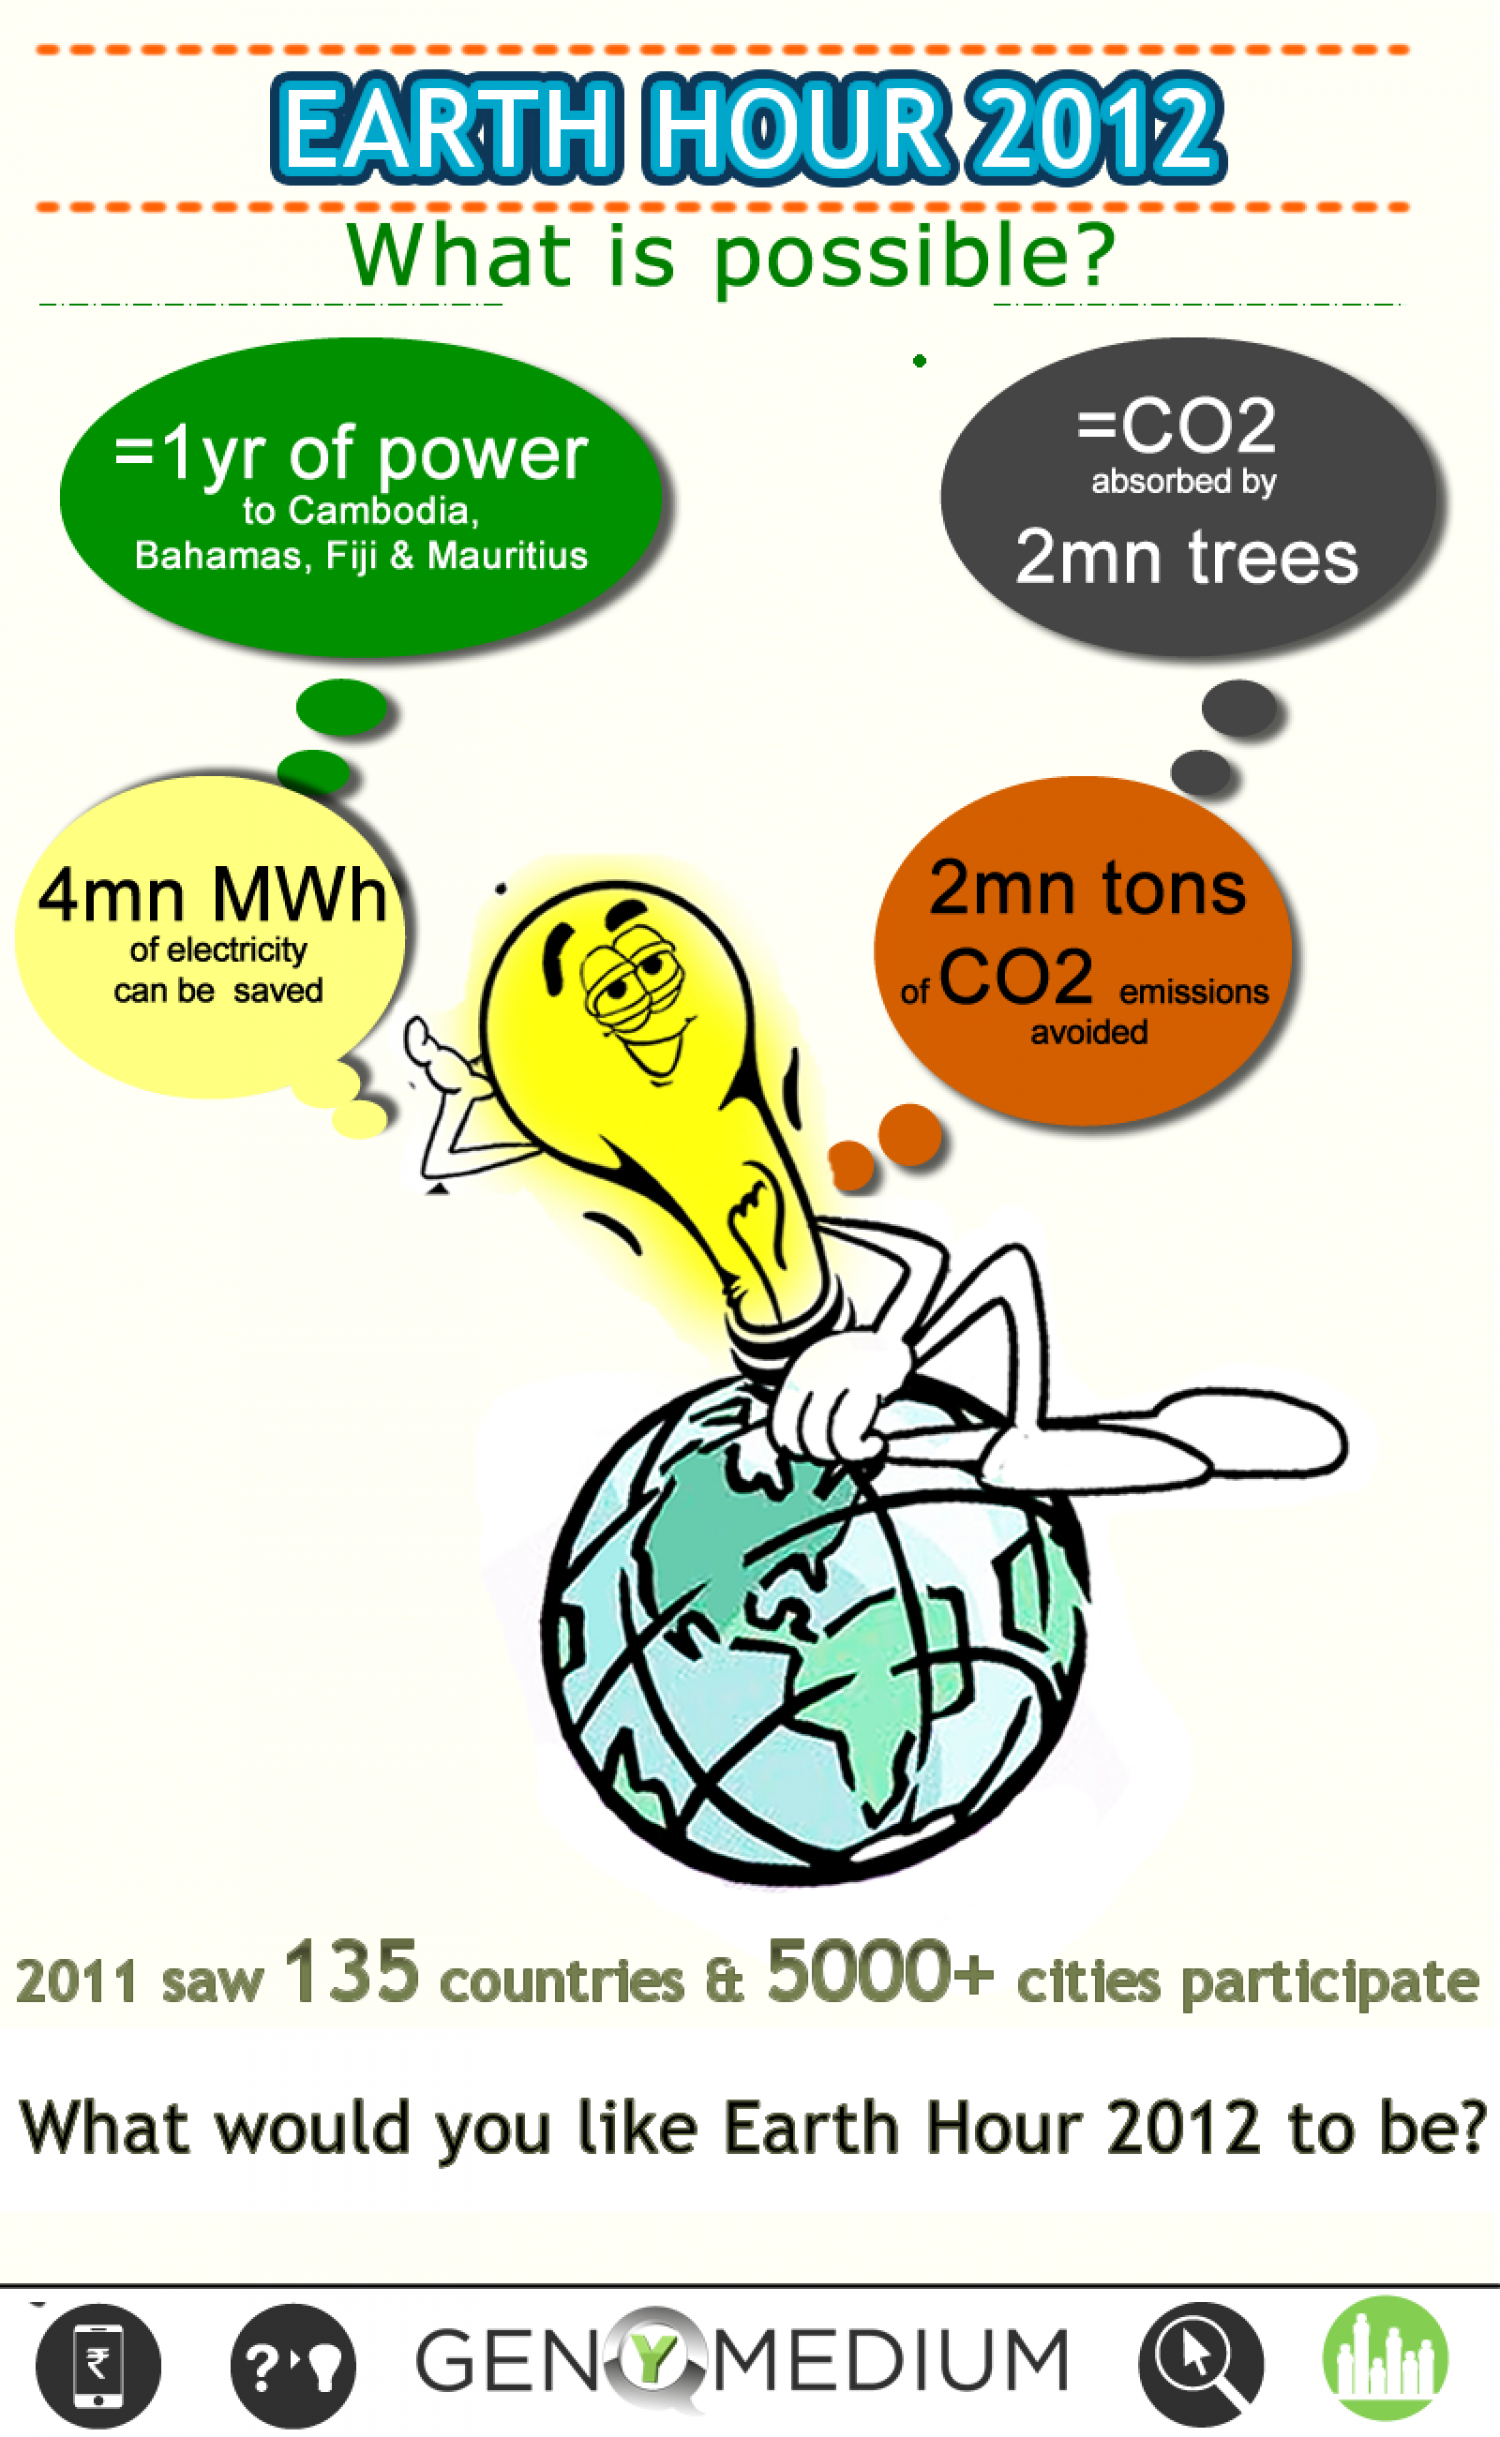 Earth hour 2012 Infographic